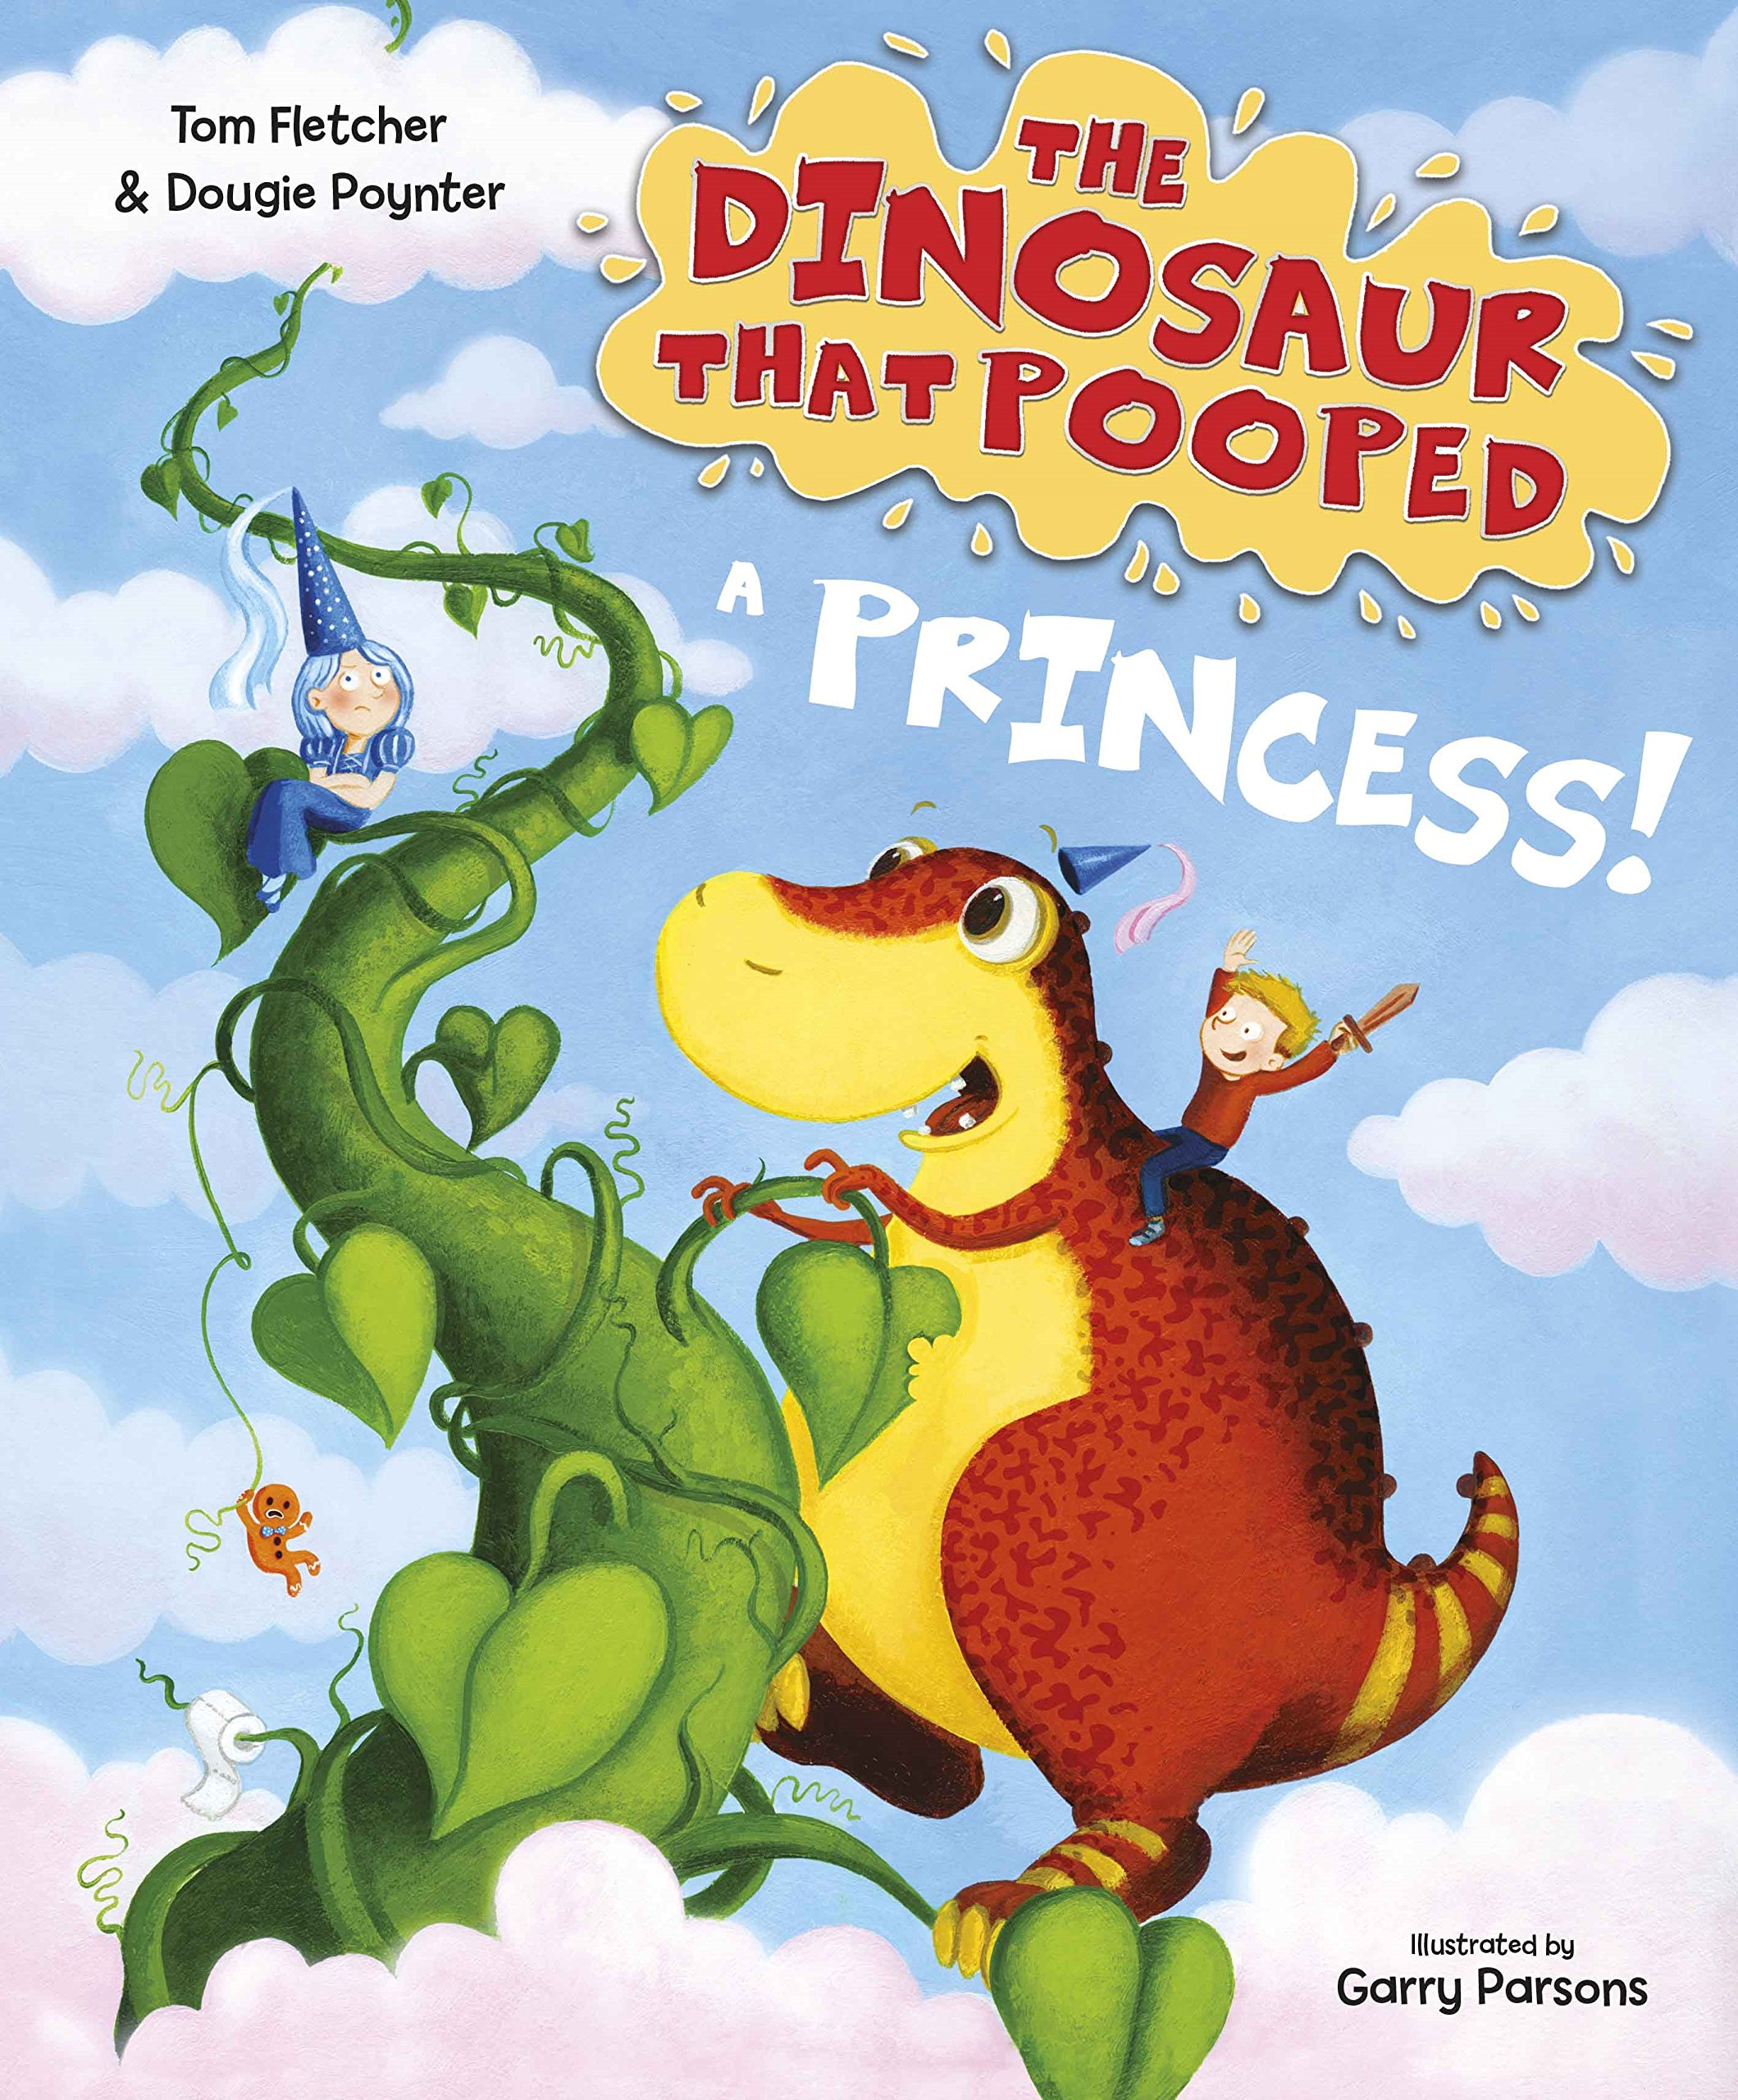 The Dinosaur that Pooped a Princess: Amazon.co.uk: Fletcher, Tom ...